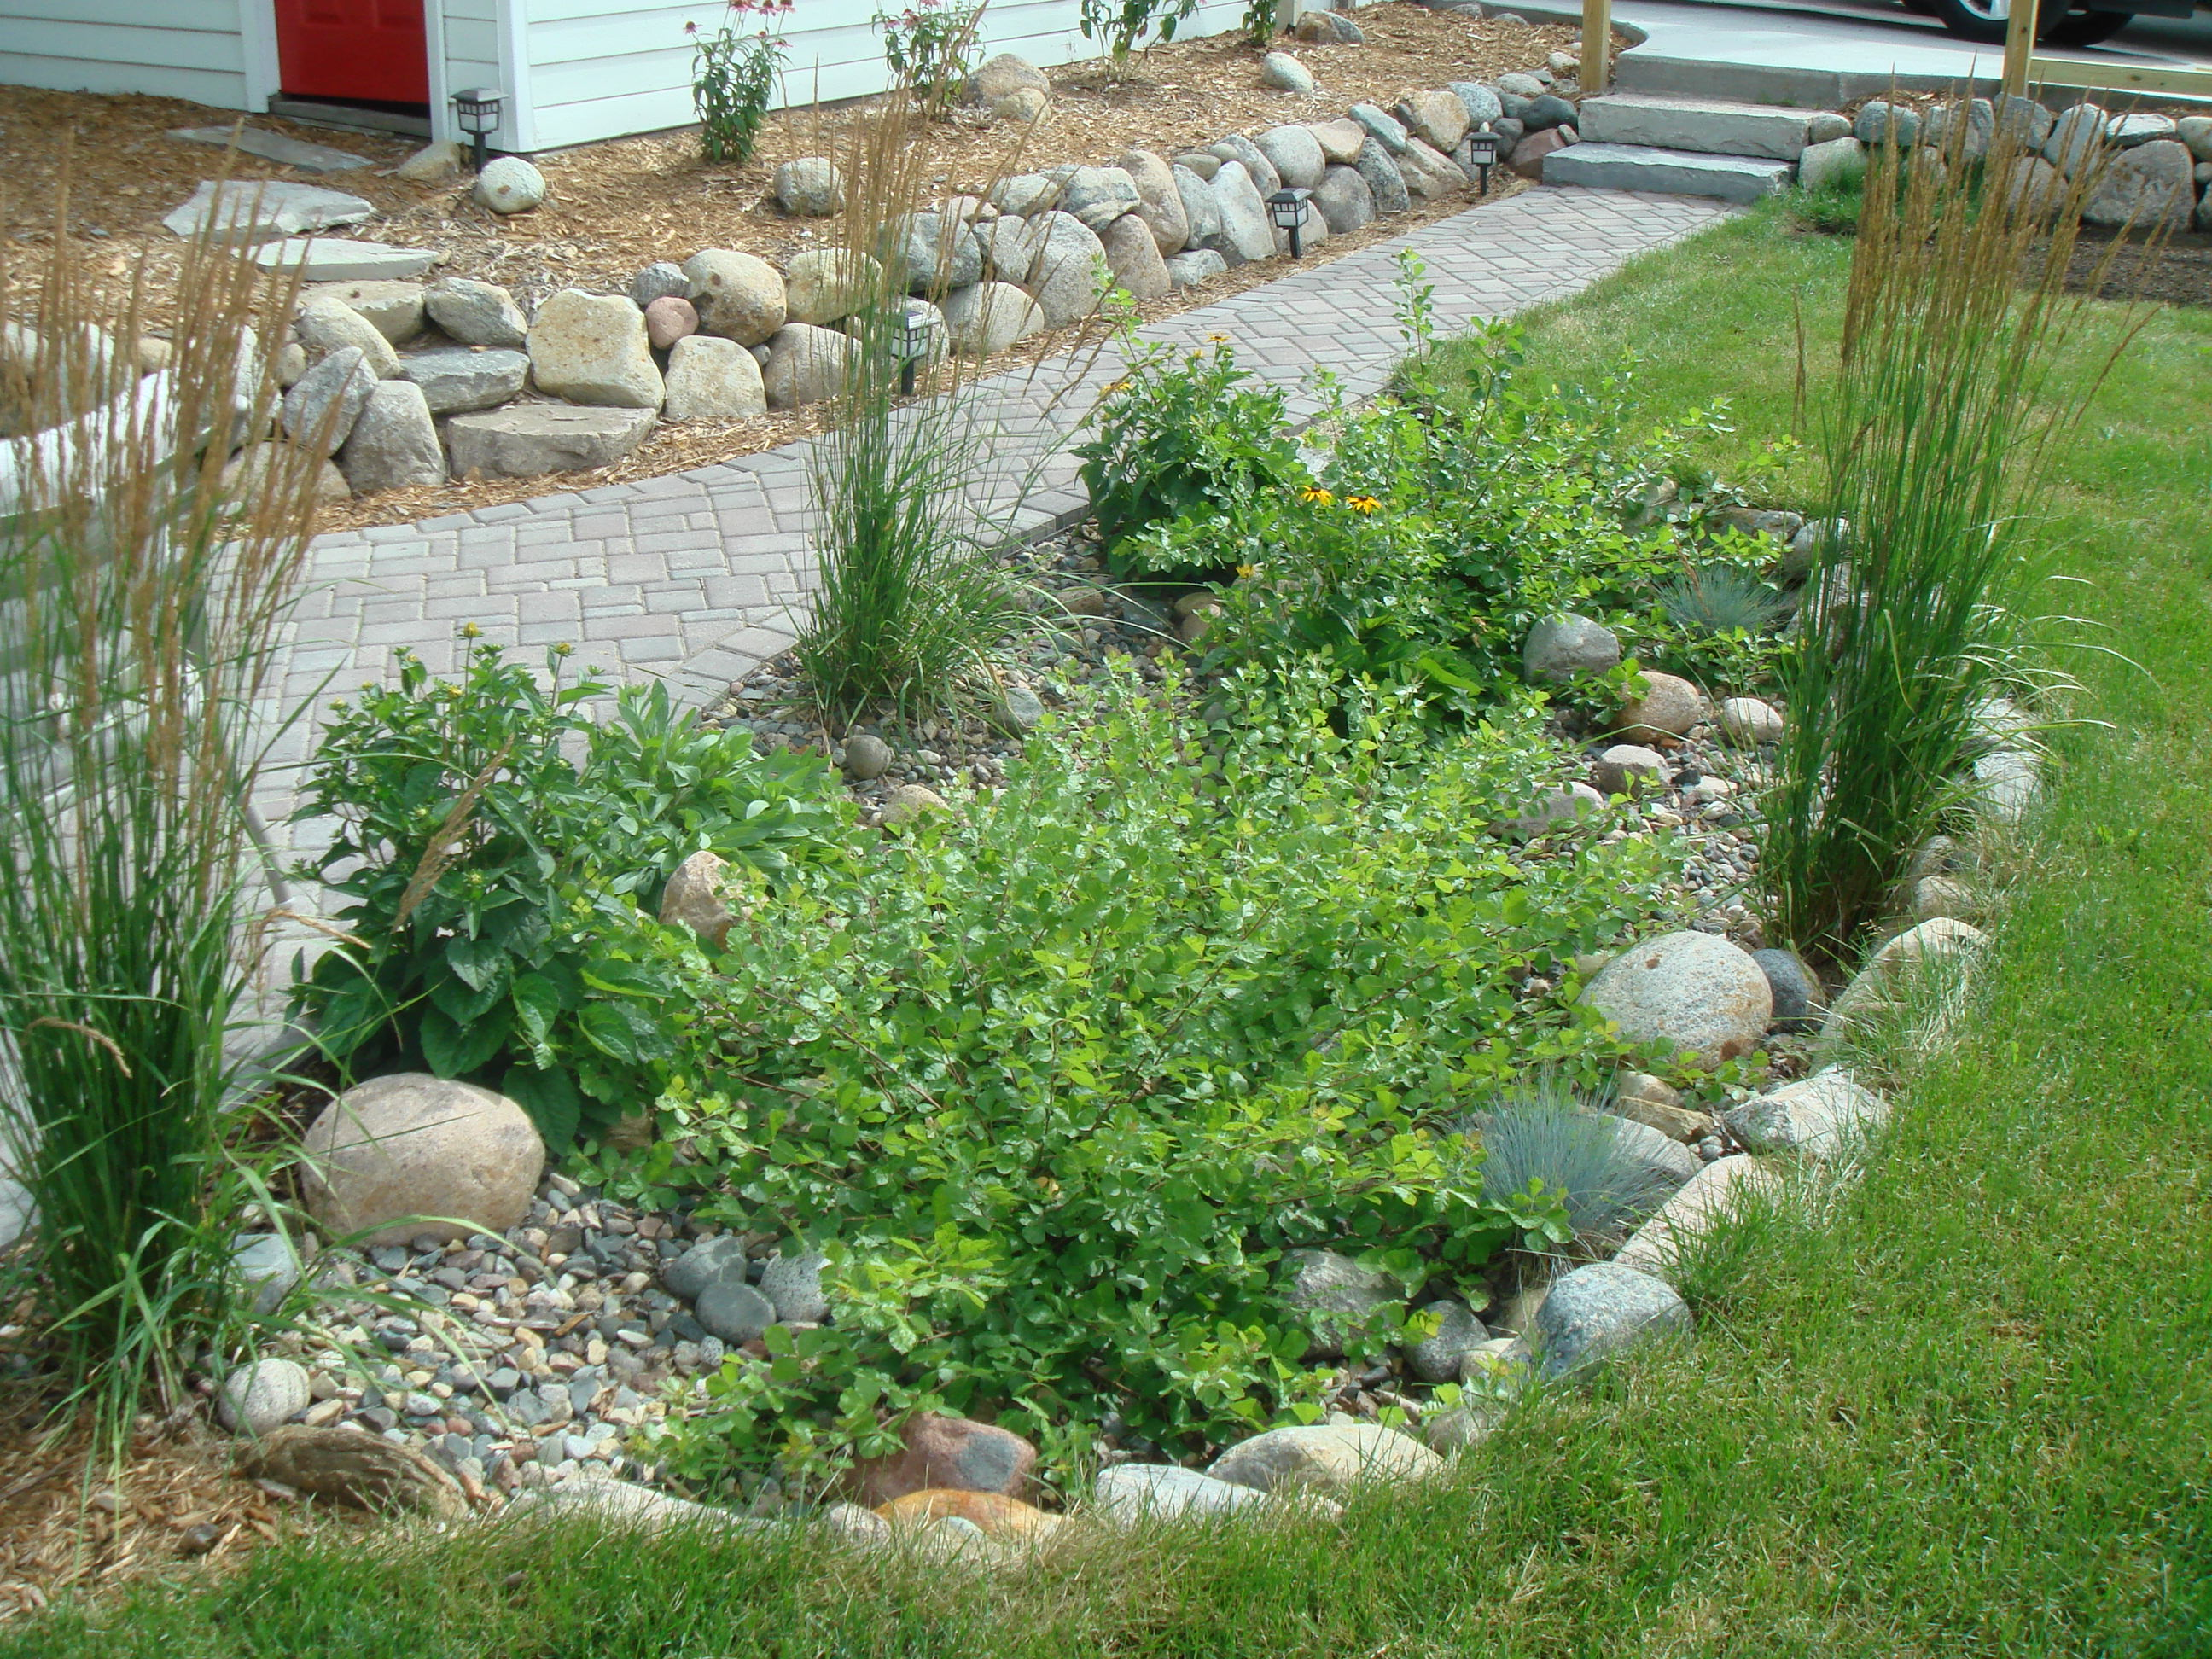 7 better ways to save water in your home landscapes for Home rain garden design